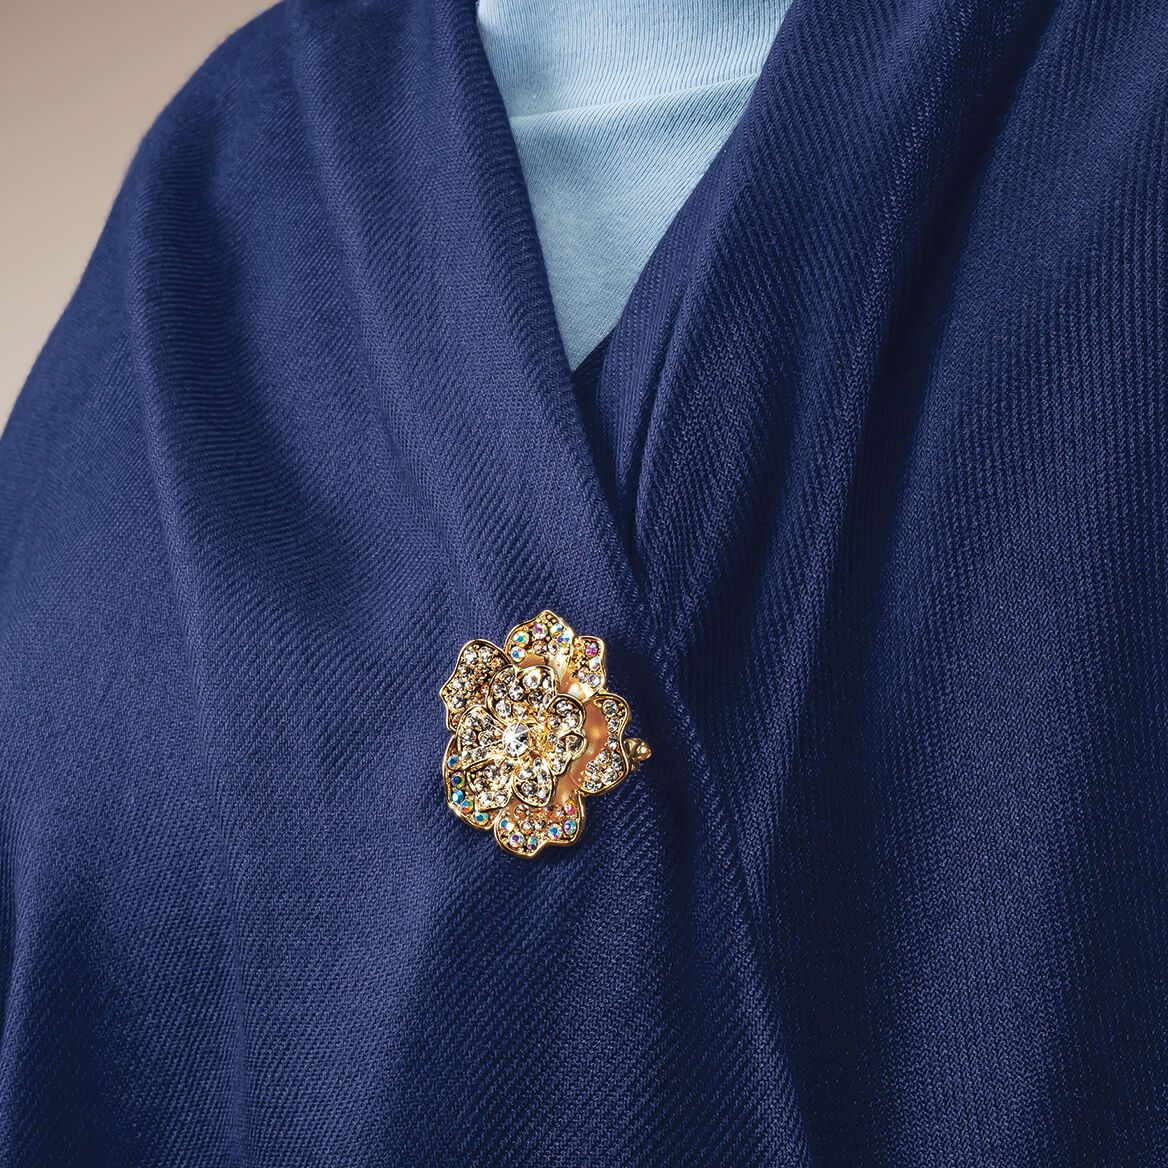 Goldtone Flower Pendant and Brooch Combination Necklace-369585